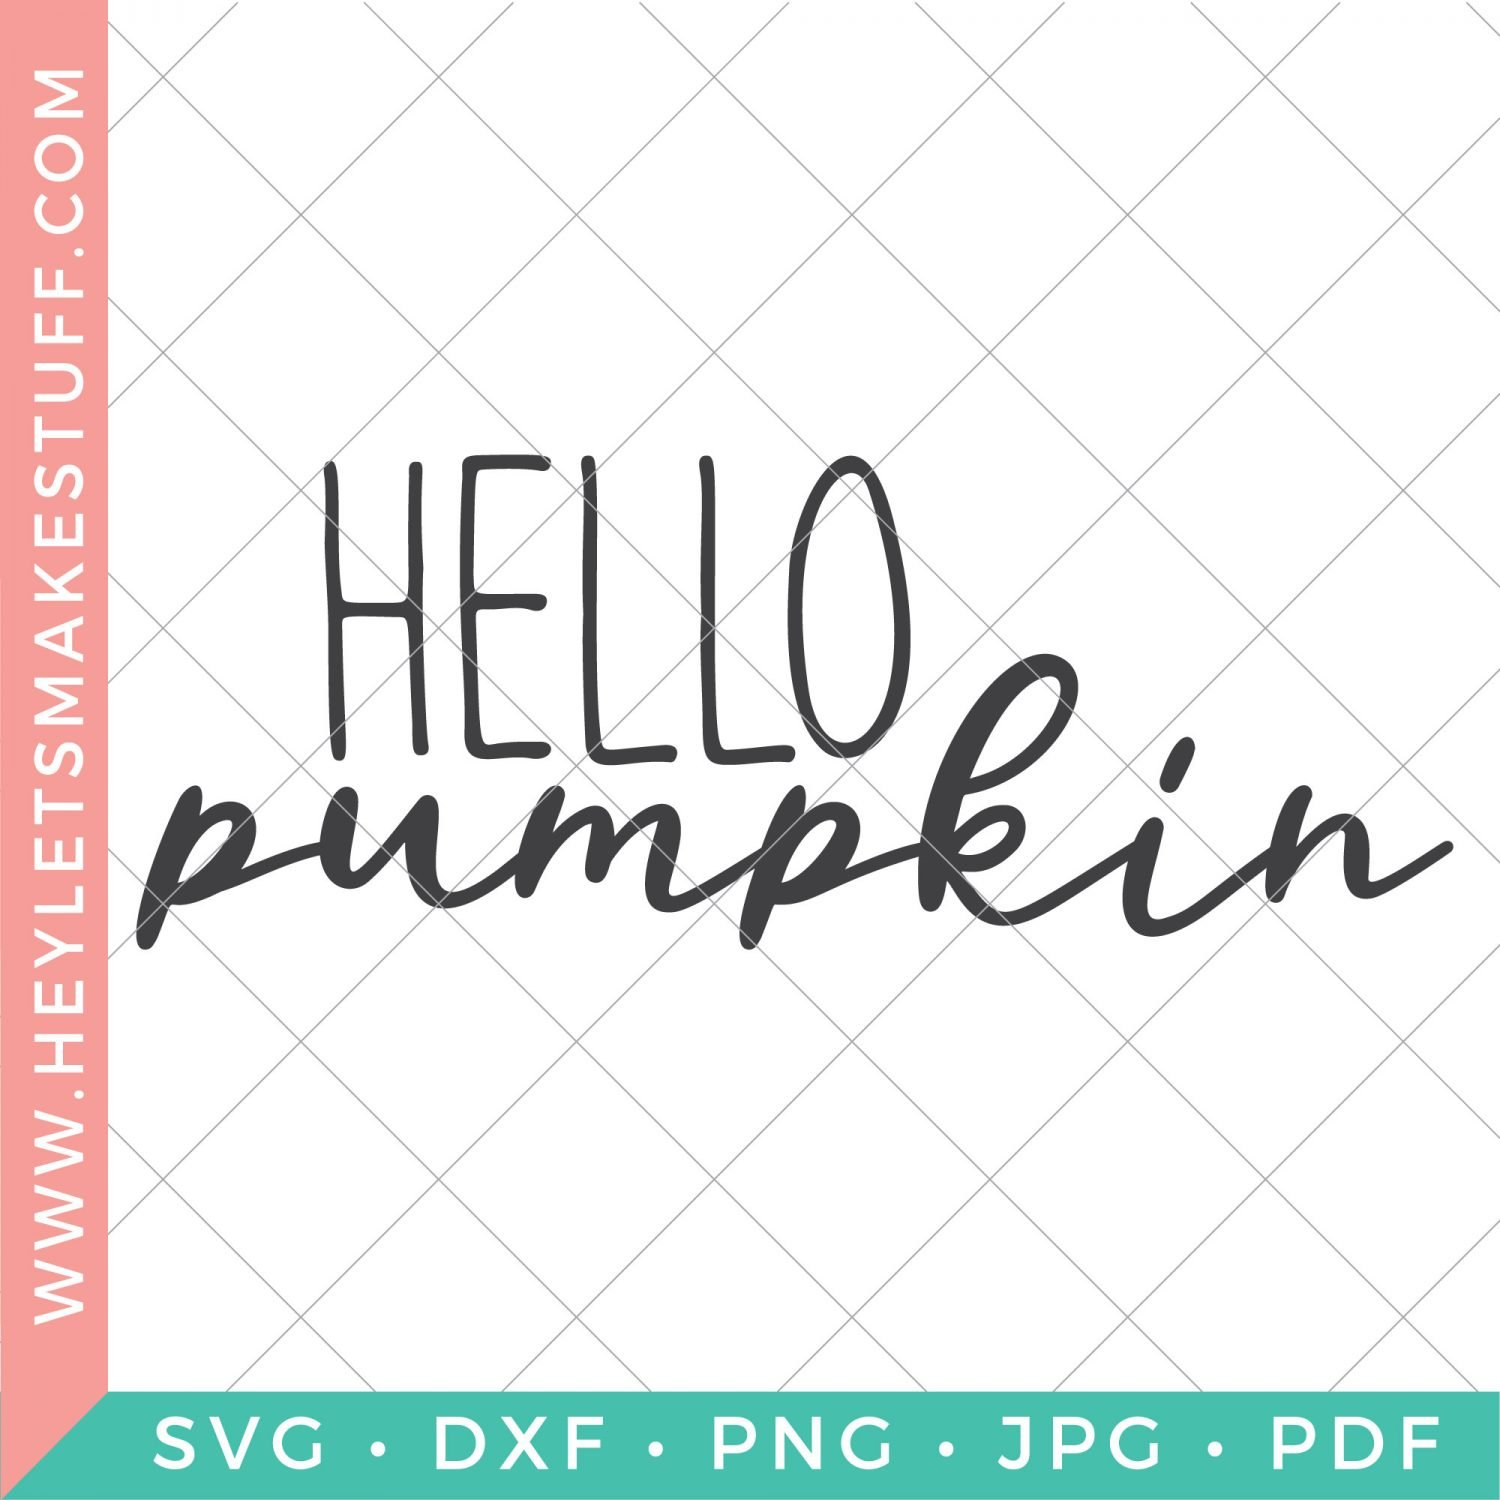 Hello Pumpkin SVG security image